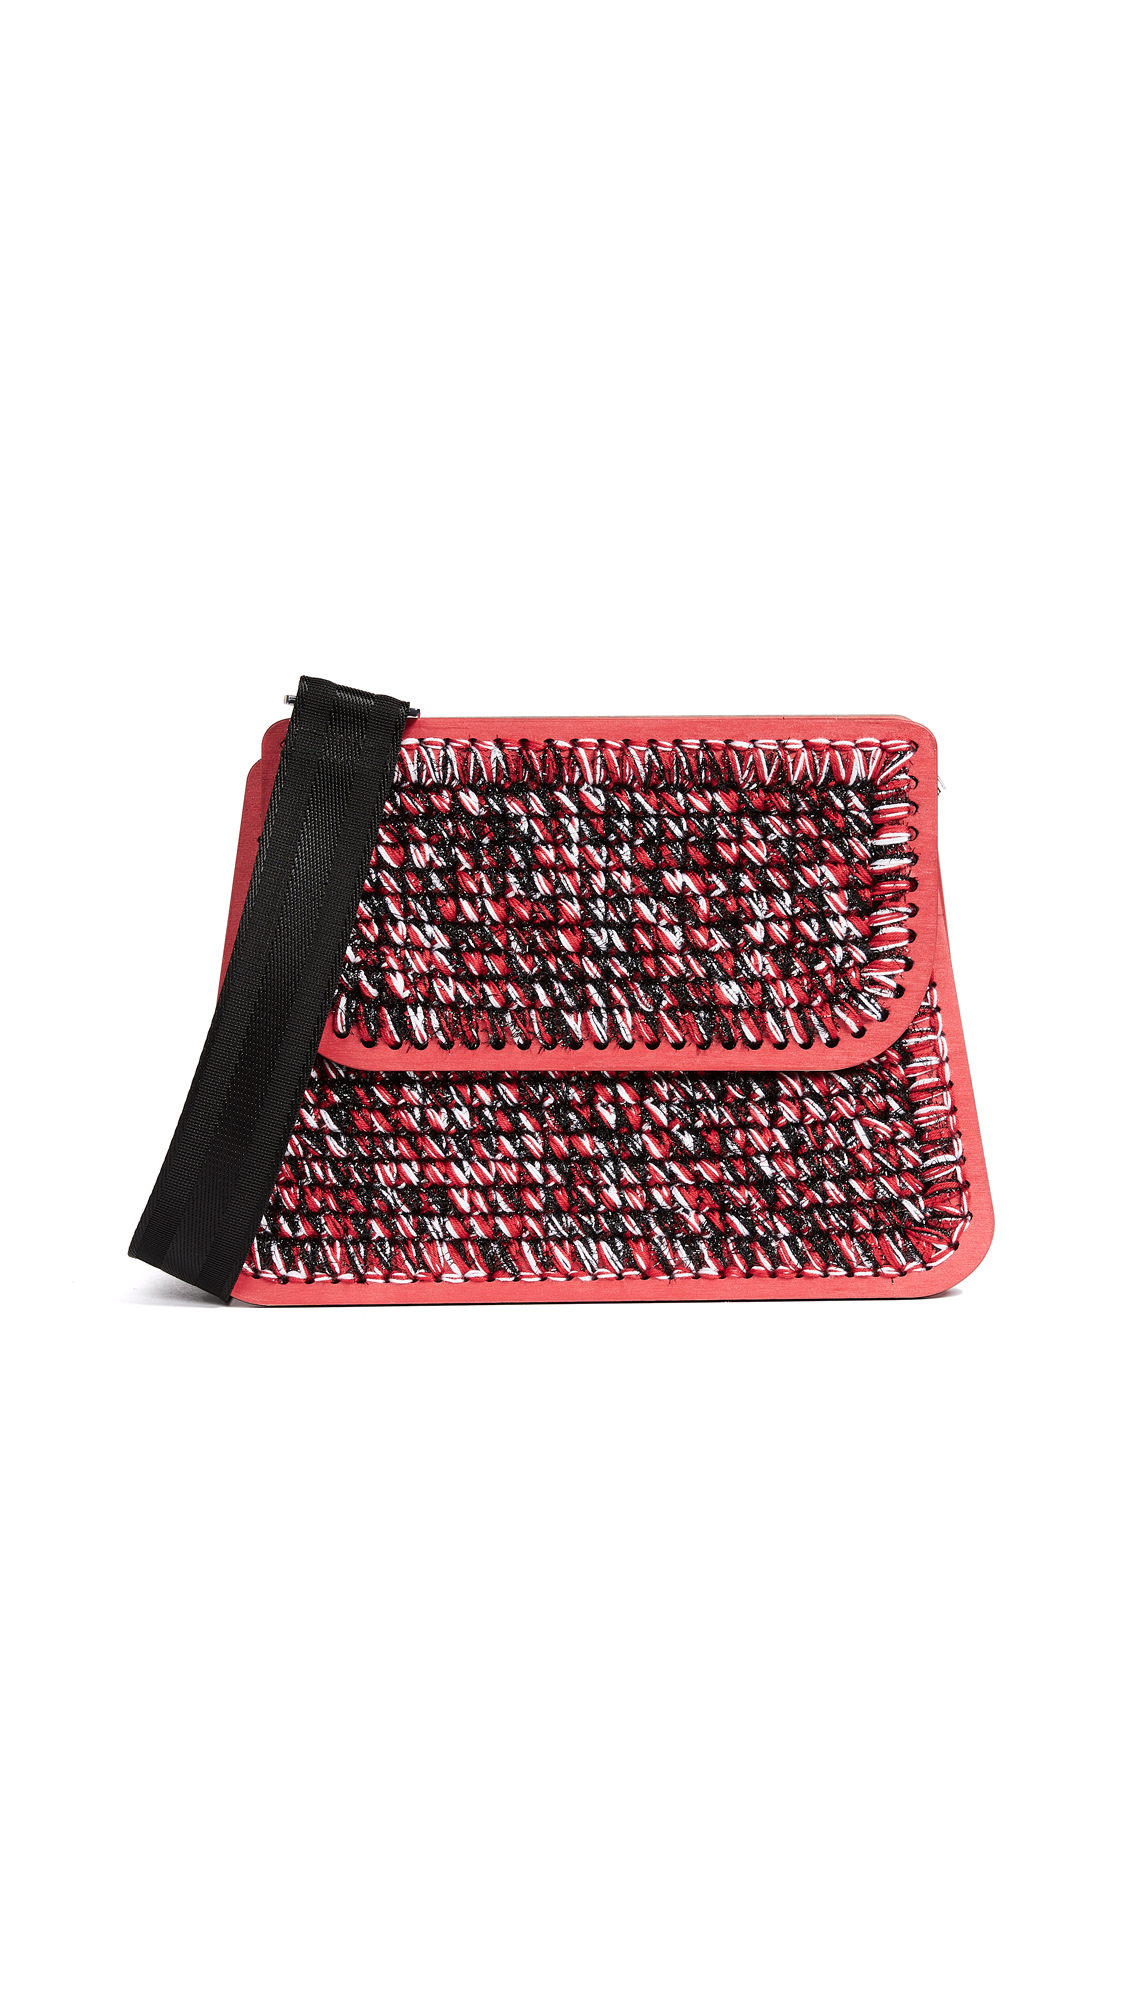 0711 Juliete Monaco Purse - Red/White/Black